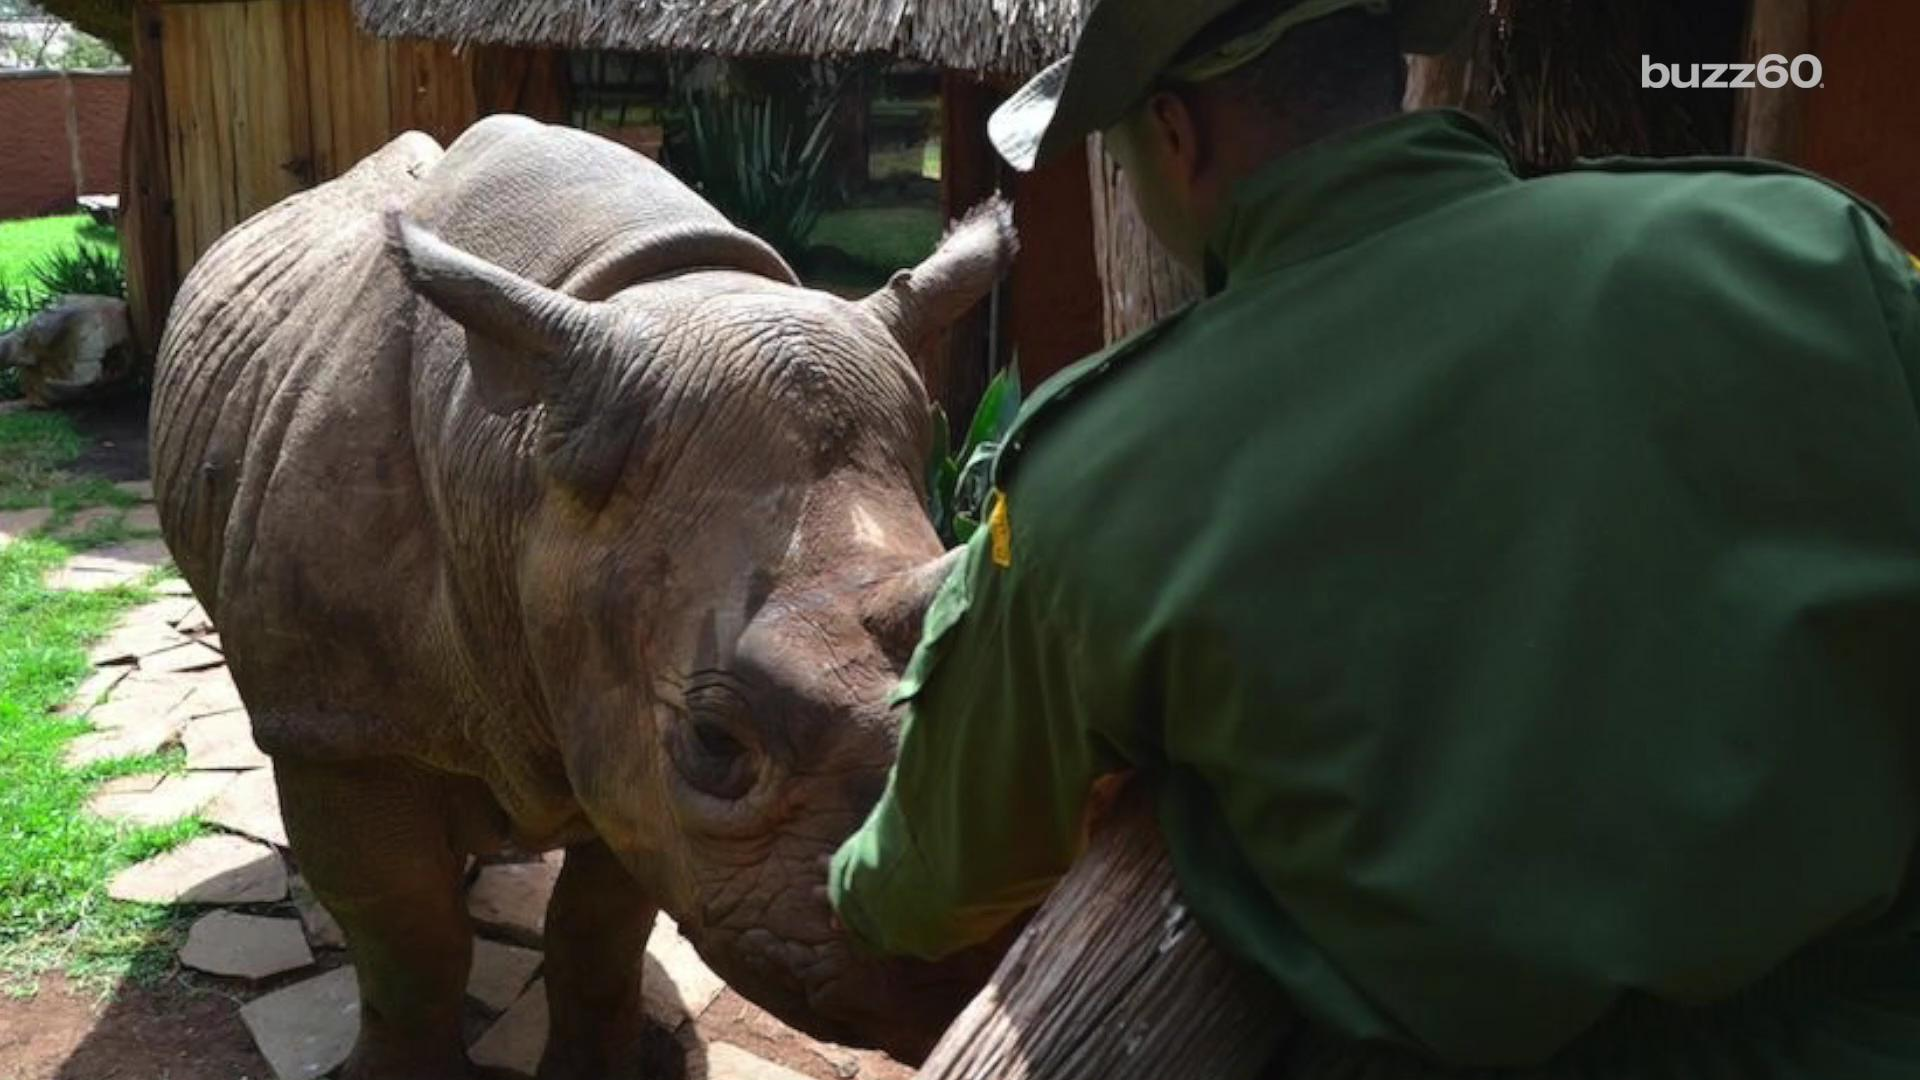 Rhino visits conservancy after being released back into the wild